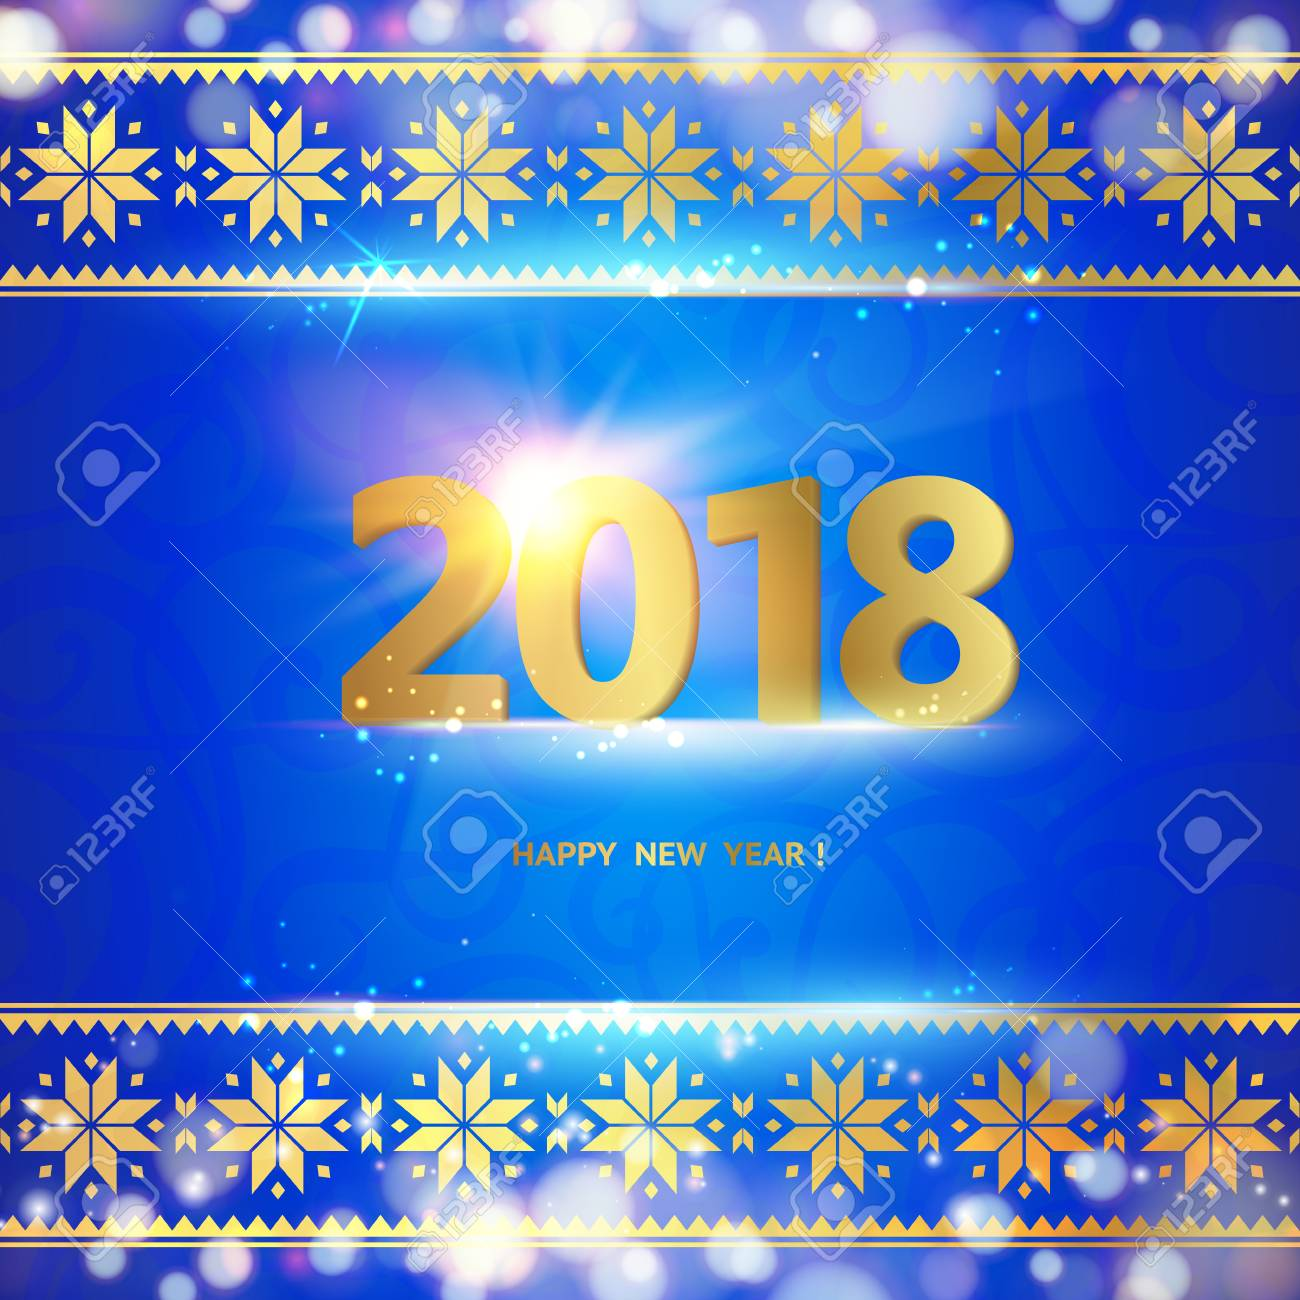 2018 year calendar design template holiday label with numbers over blue backdrop with ornamental border